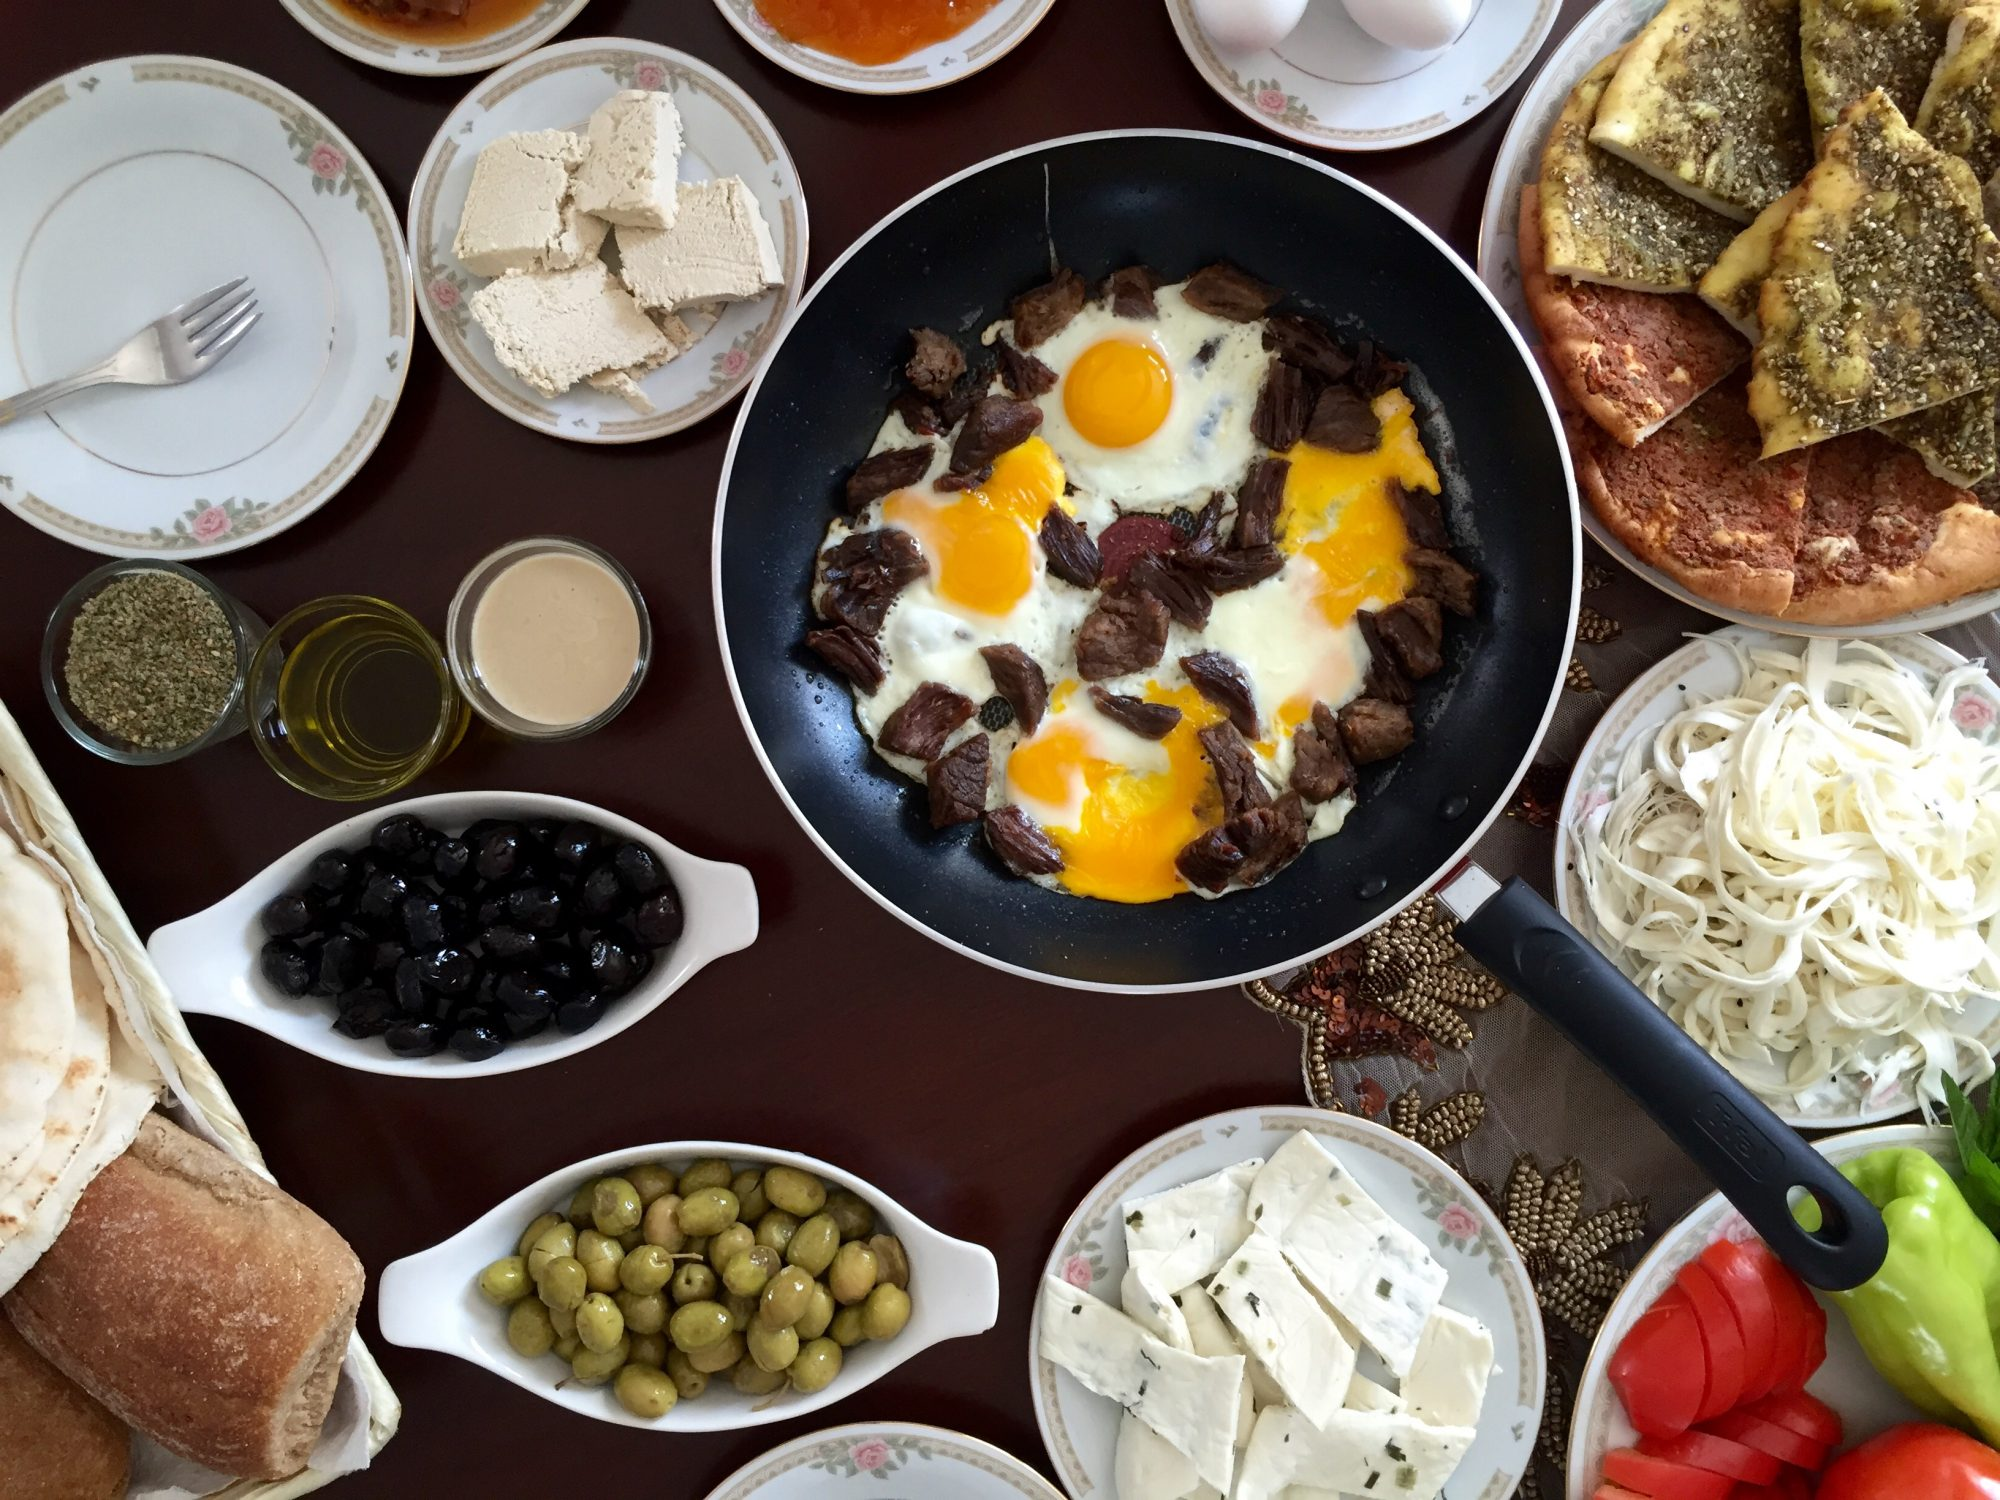 EC: The Many Marvels of Full Syrian Breakfast